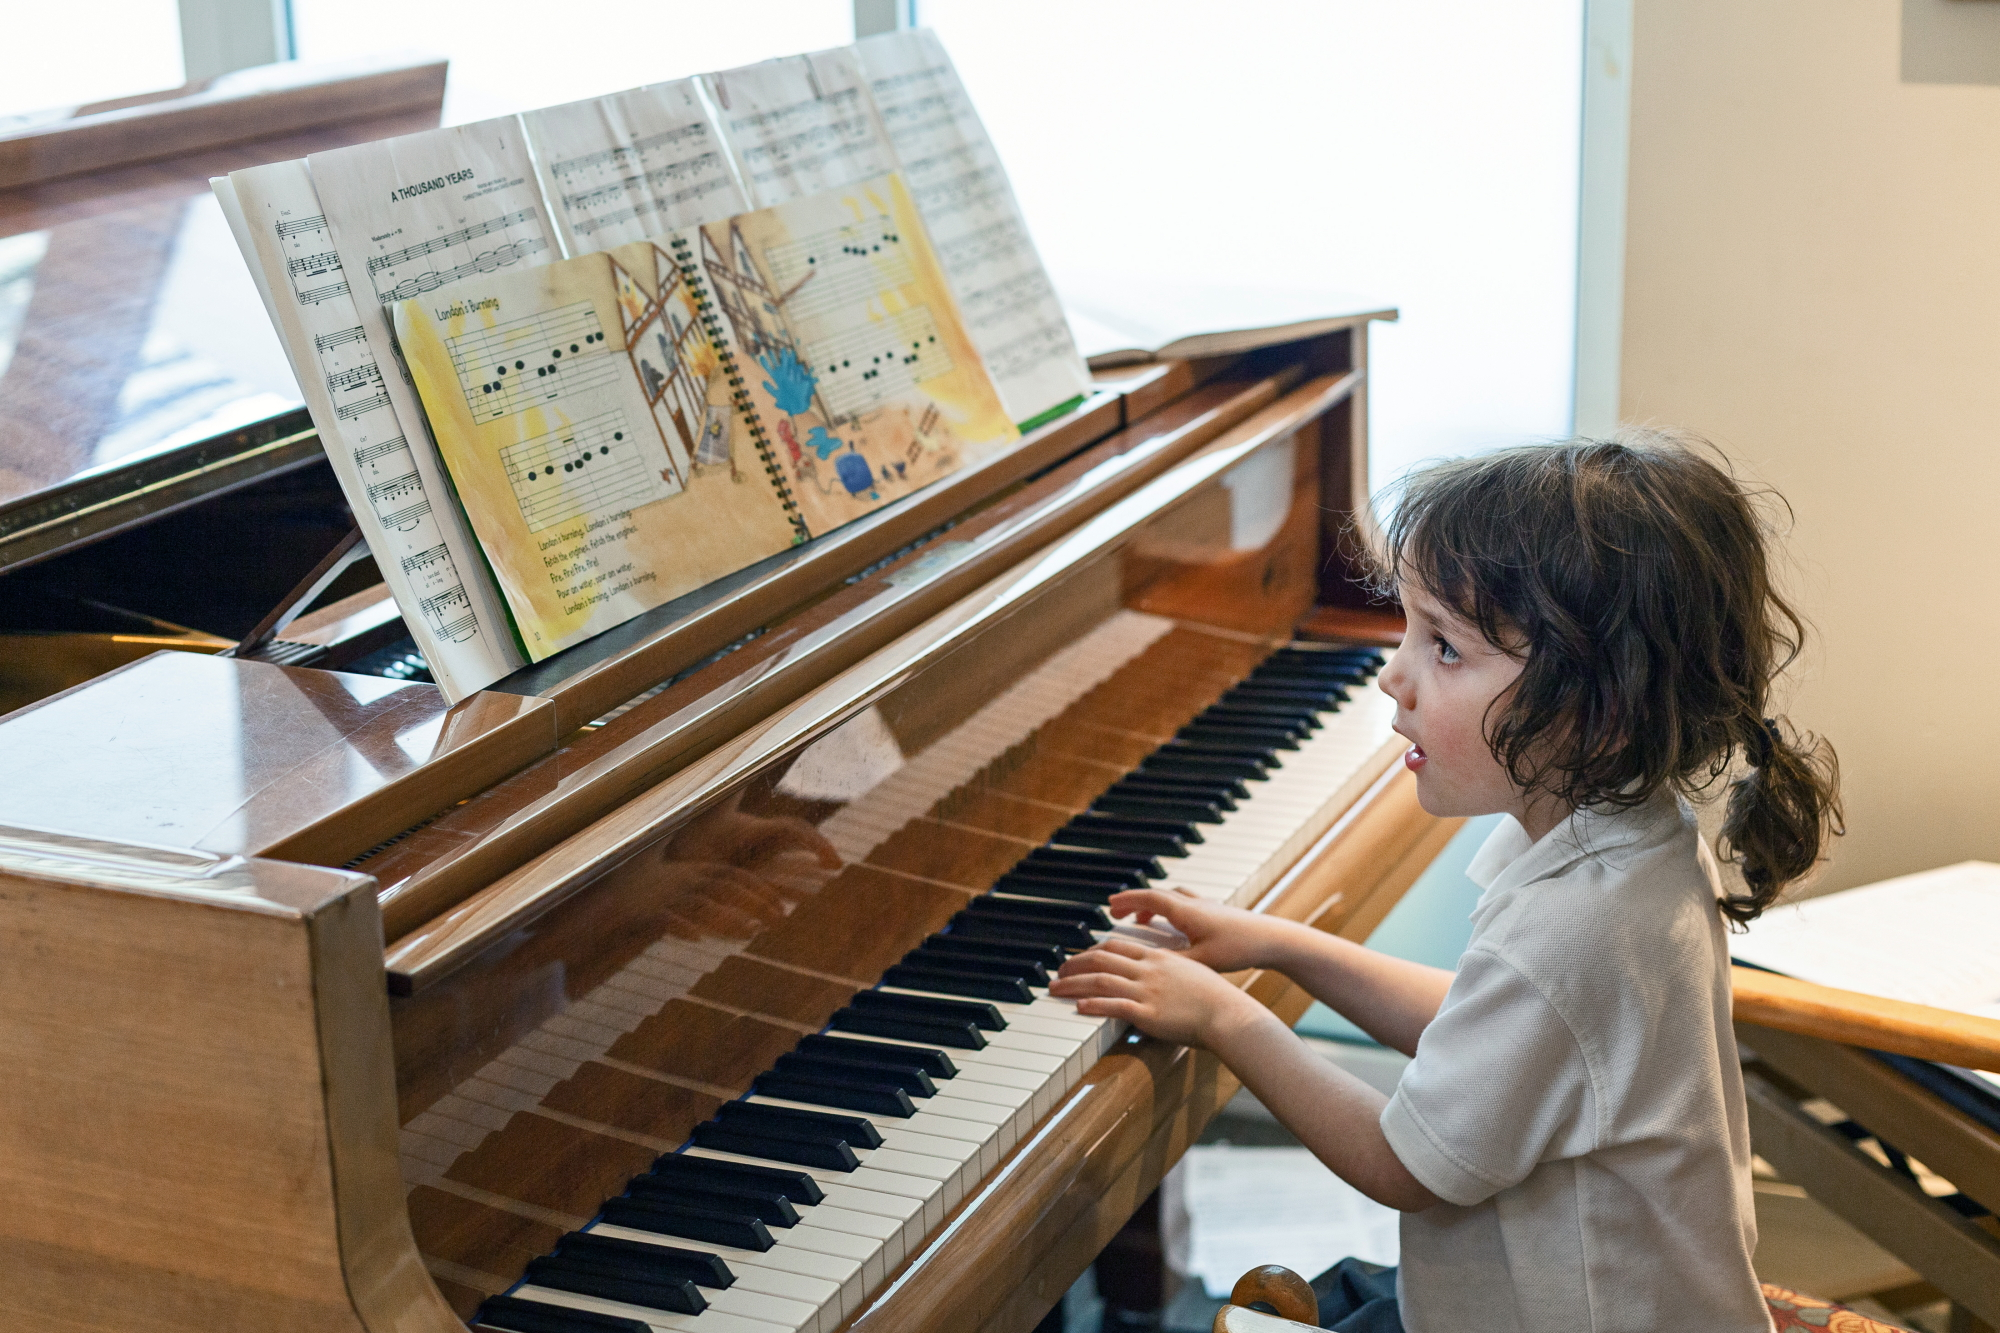 Student of Otakar Kraus Music School performing, May 2018